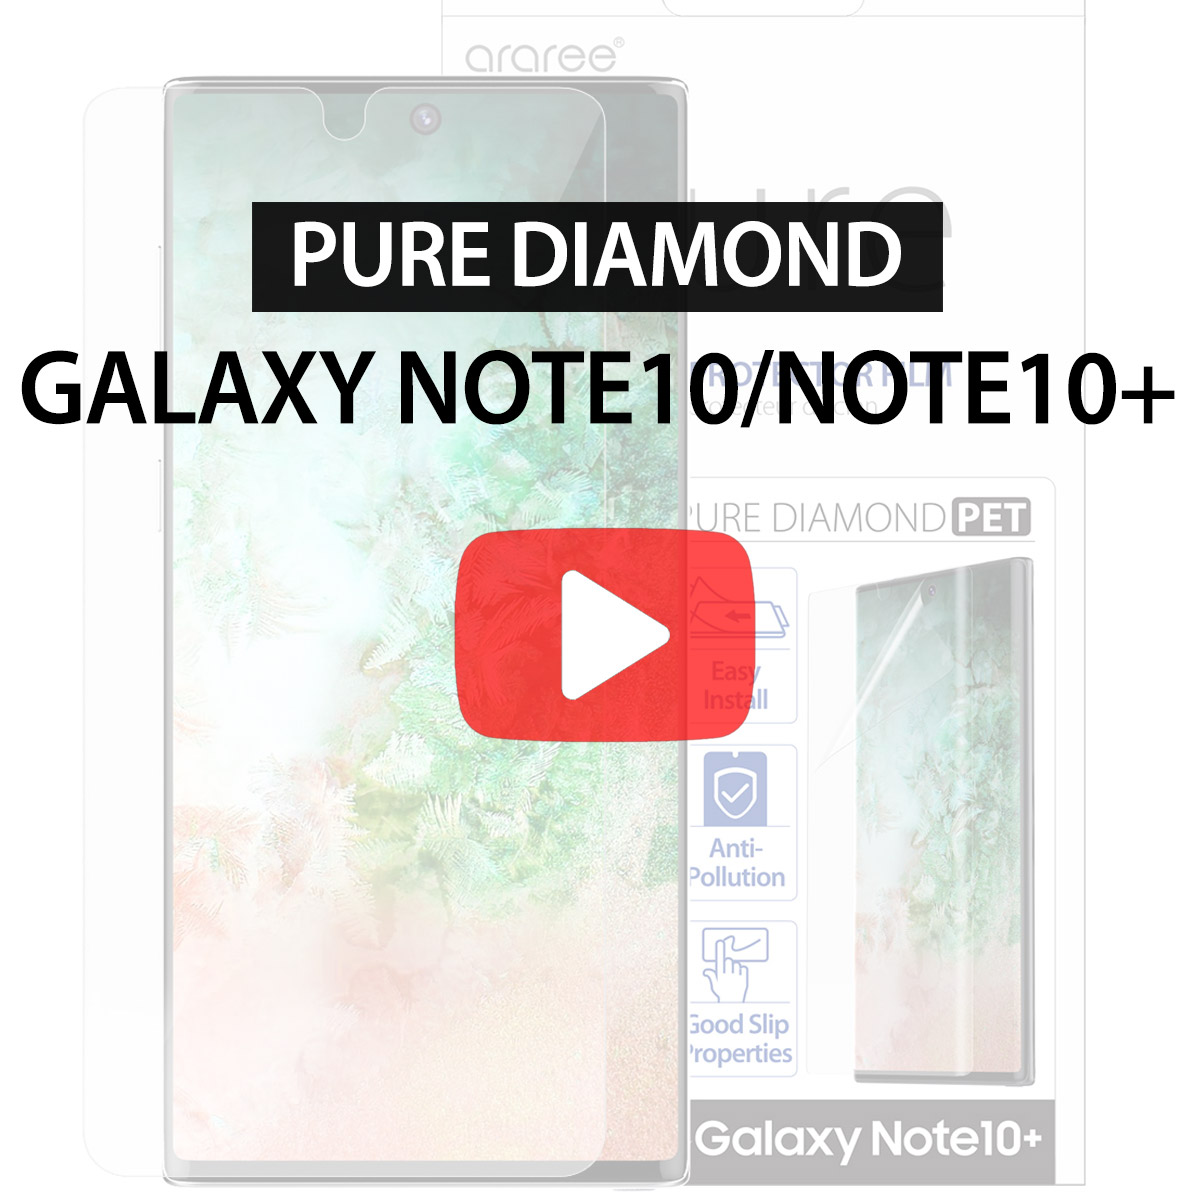 [araree] Pure Diamond for Galaxy Note10/Note10+